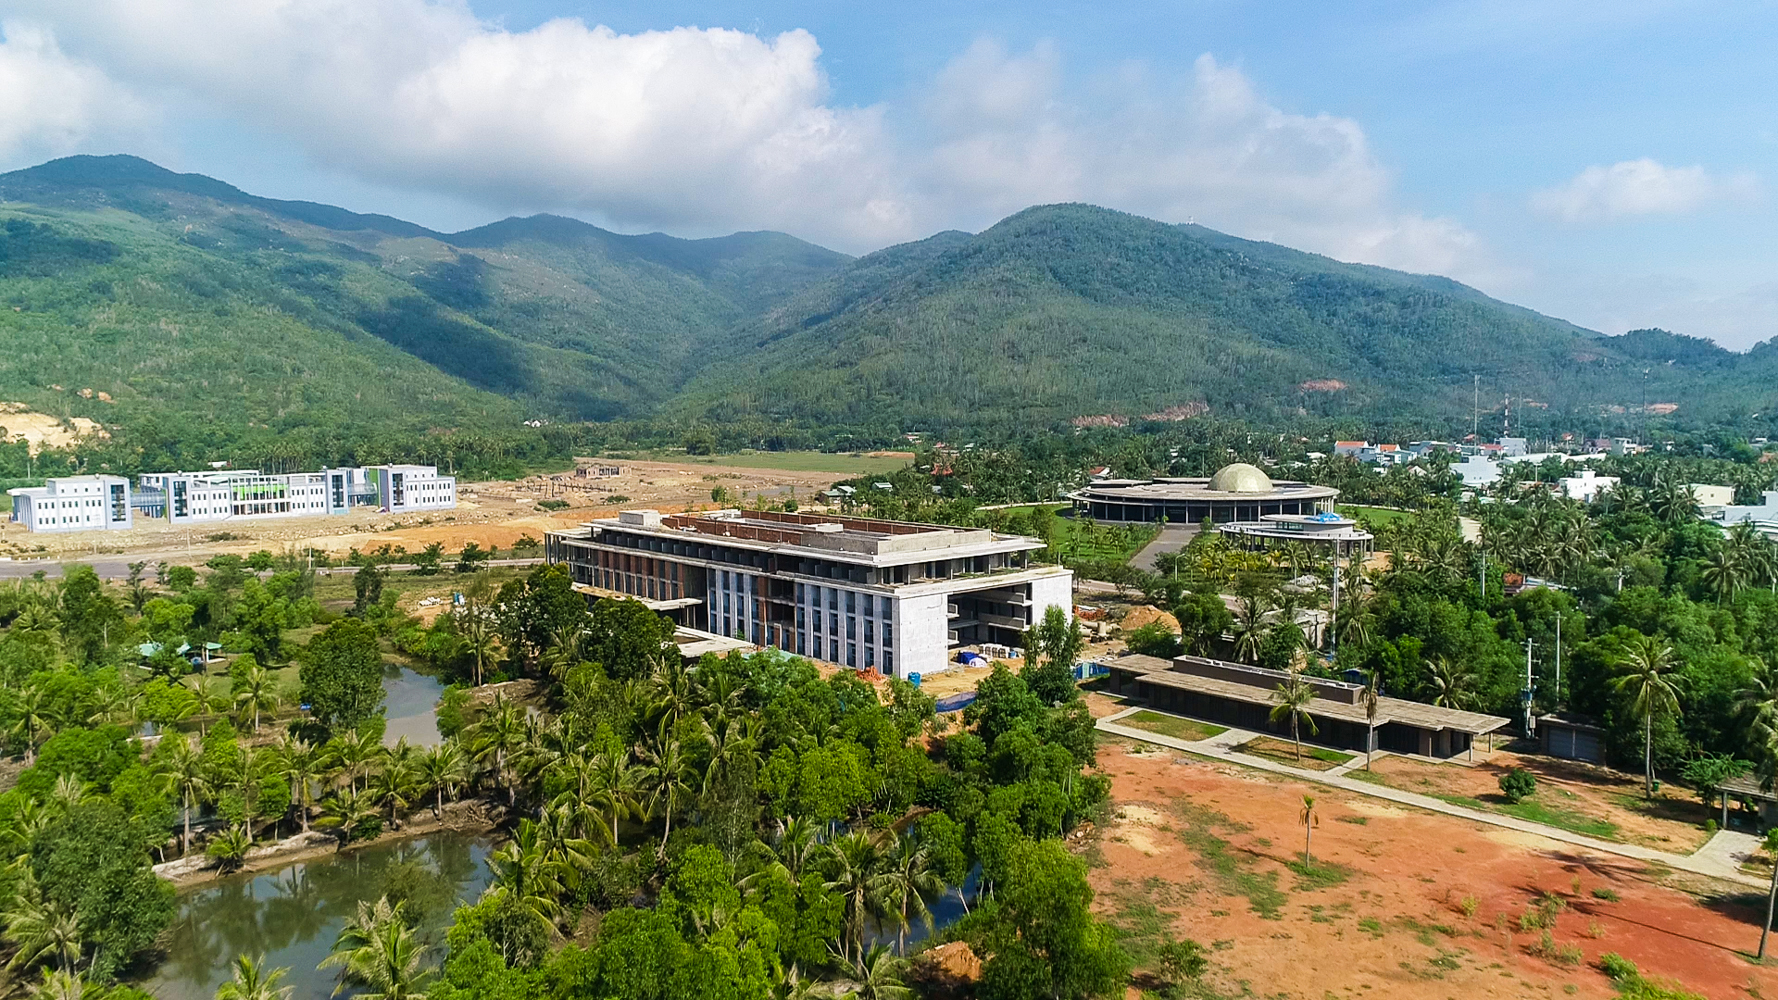 Quy Hoa scientific urban area in Quy Nhon City, central Binh Dinh Province. Photo: Dung Nhan / Tuoi Tre